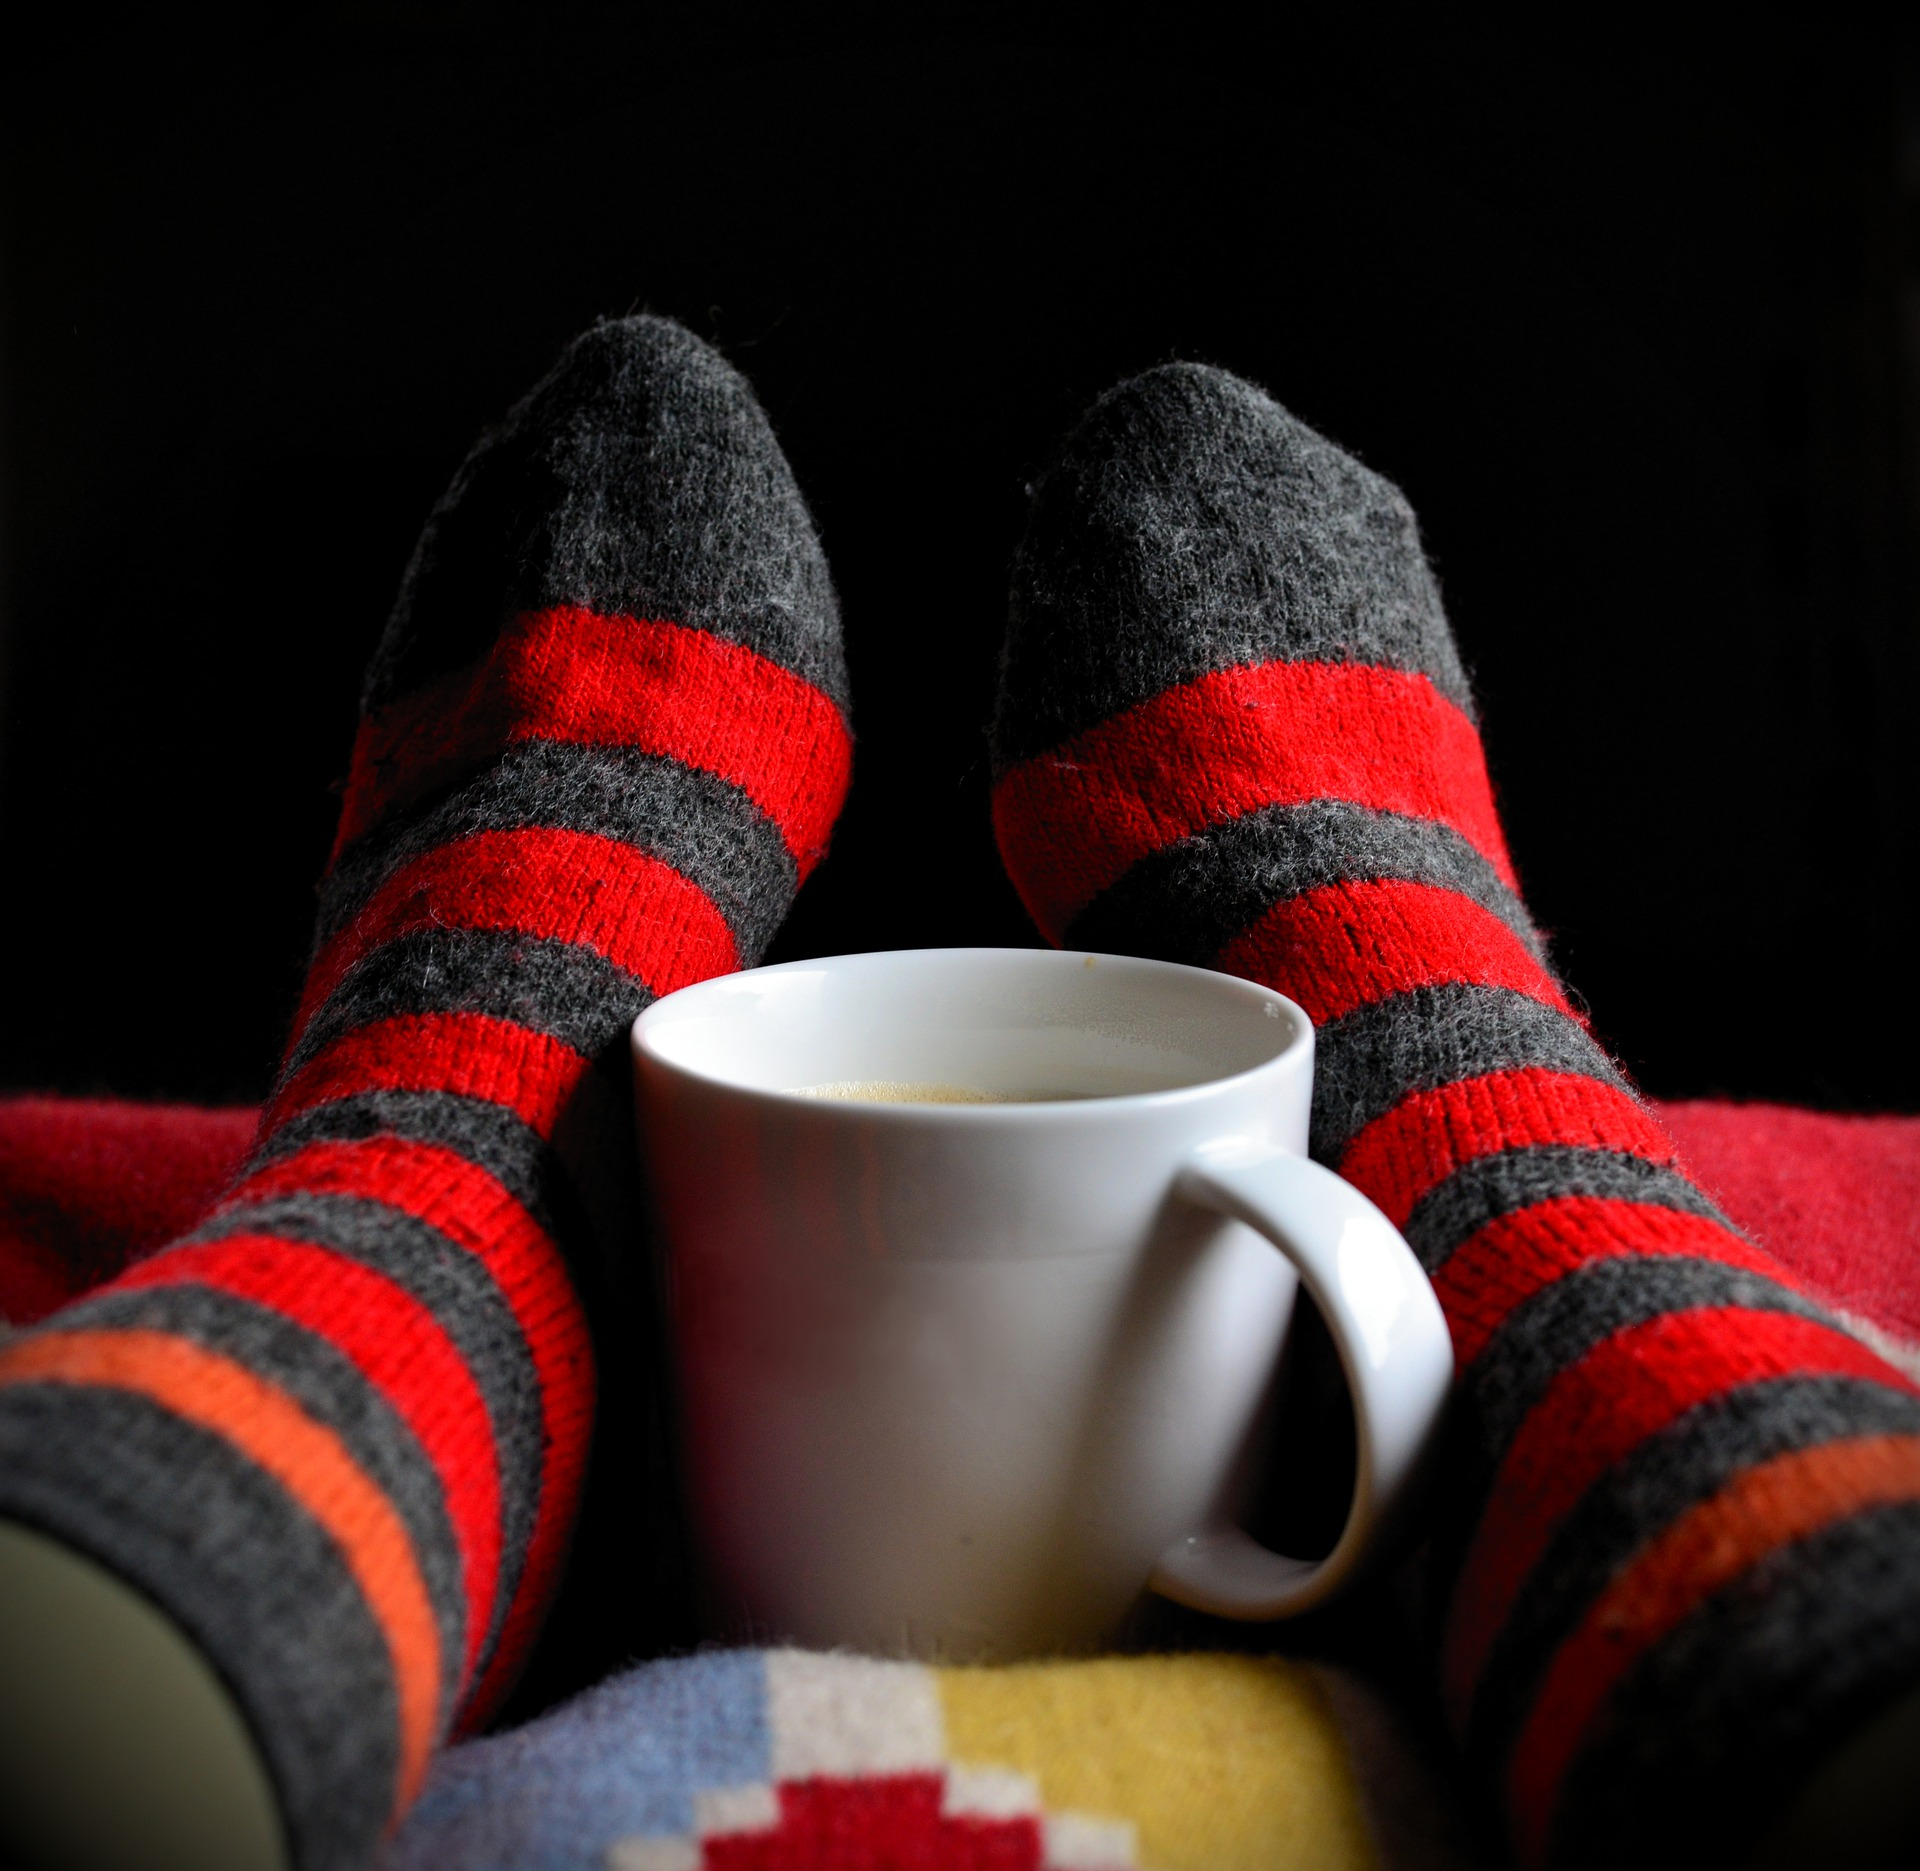 Photo of warm feet and cup